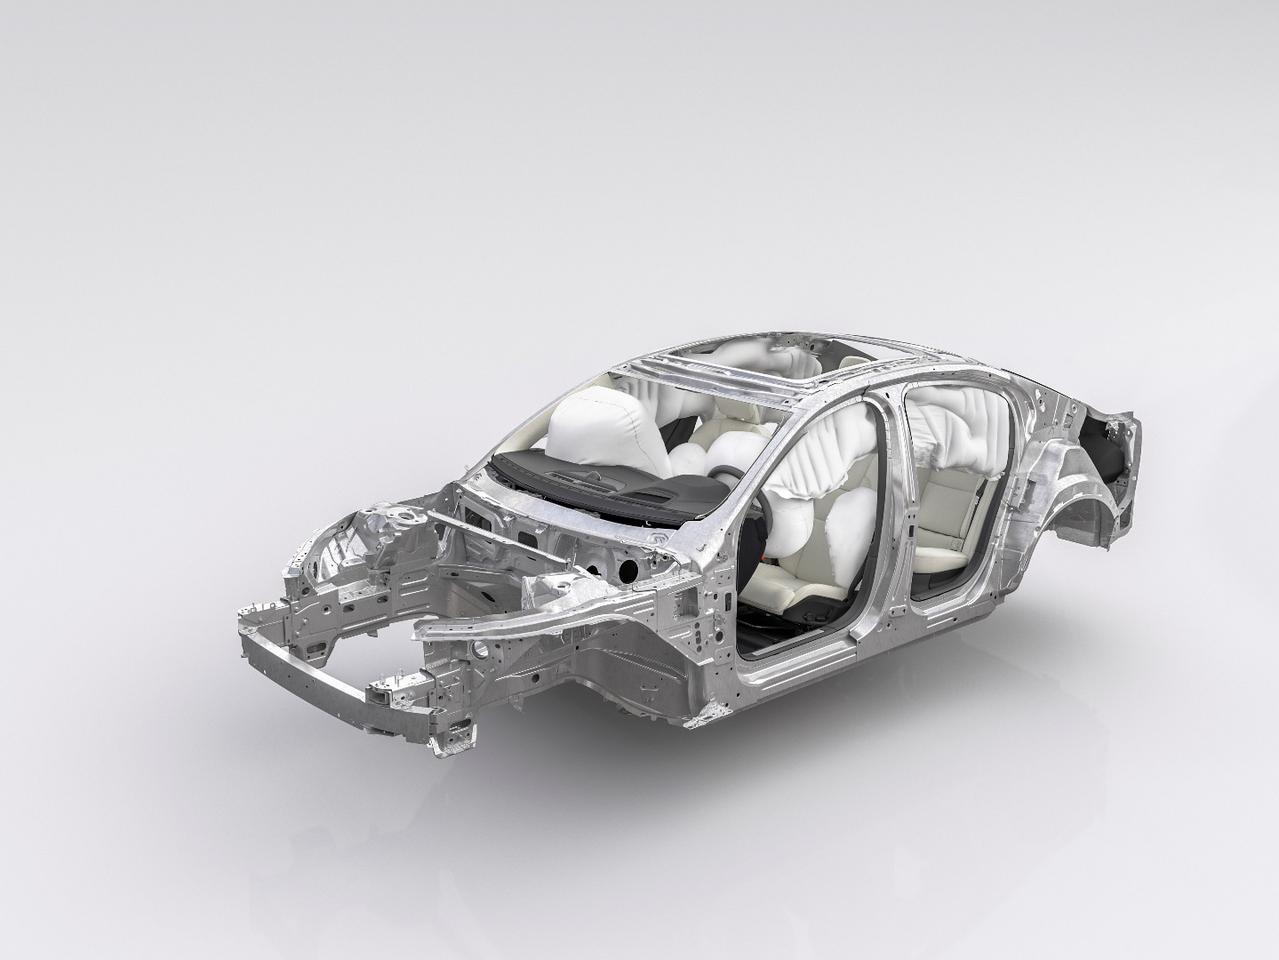 The new S60 is based on Volvo's SPA platform